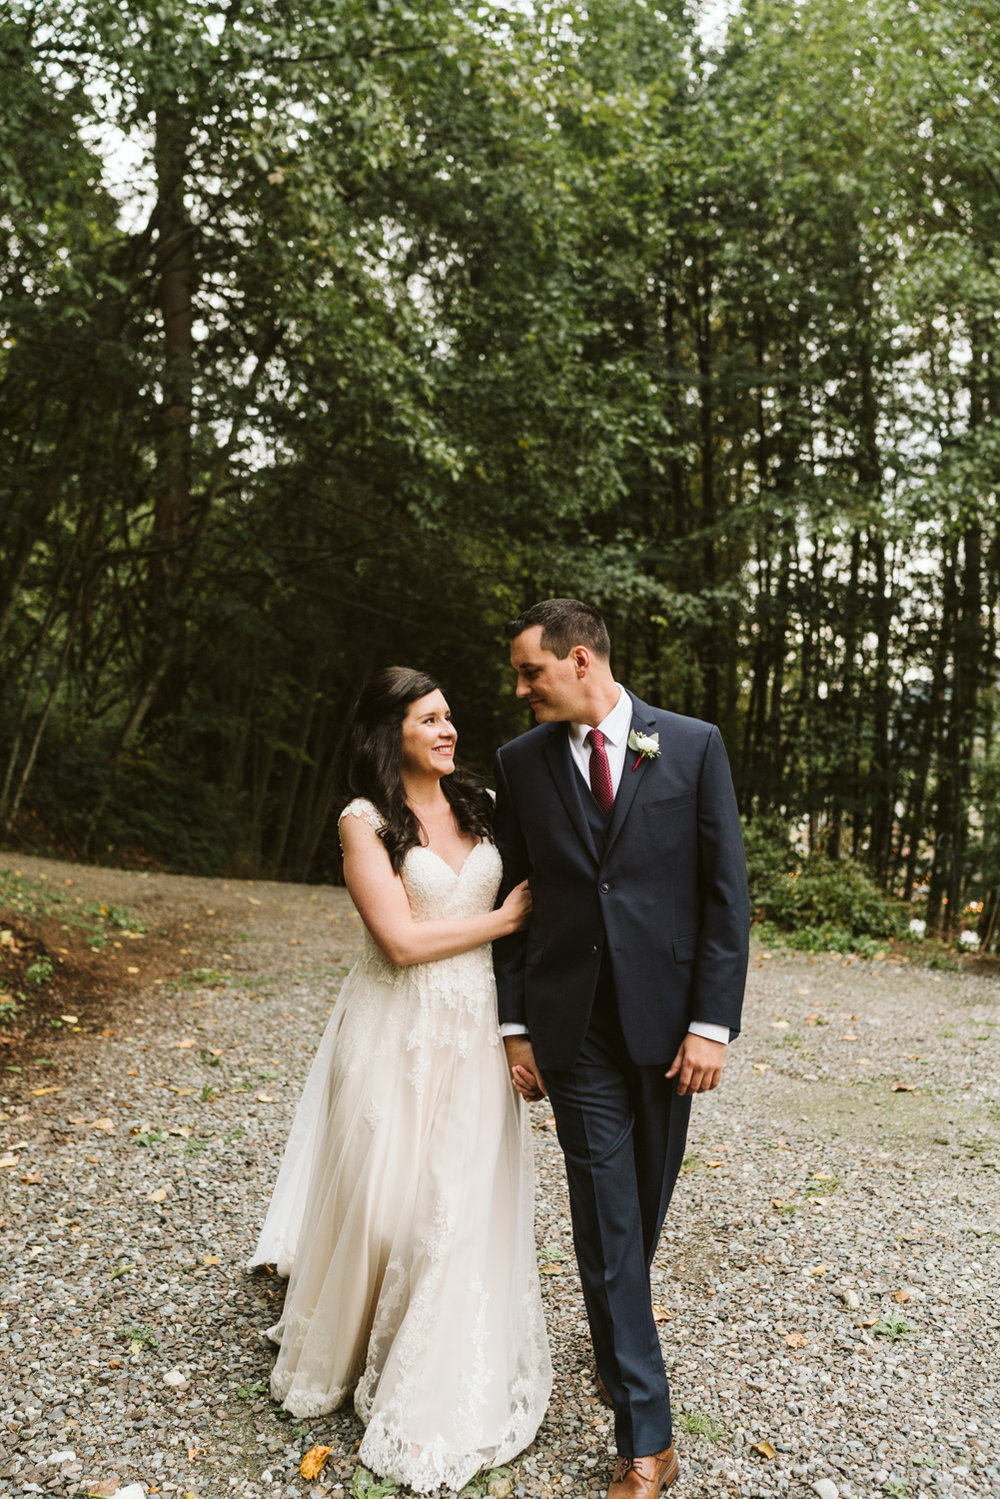 April Yentas Photography - erin & ian slideshow-54.jpg